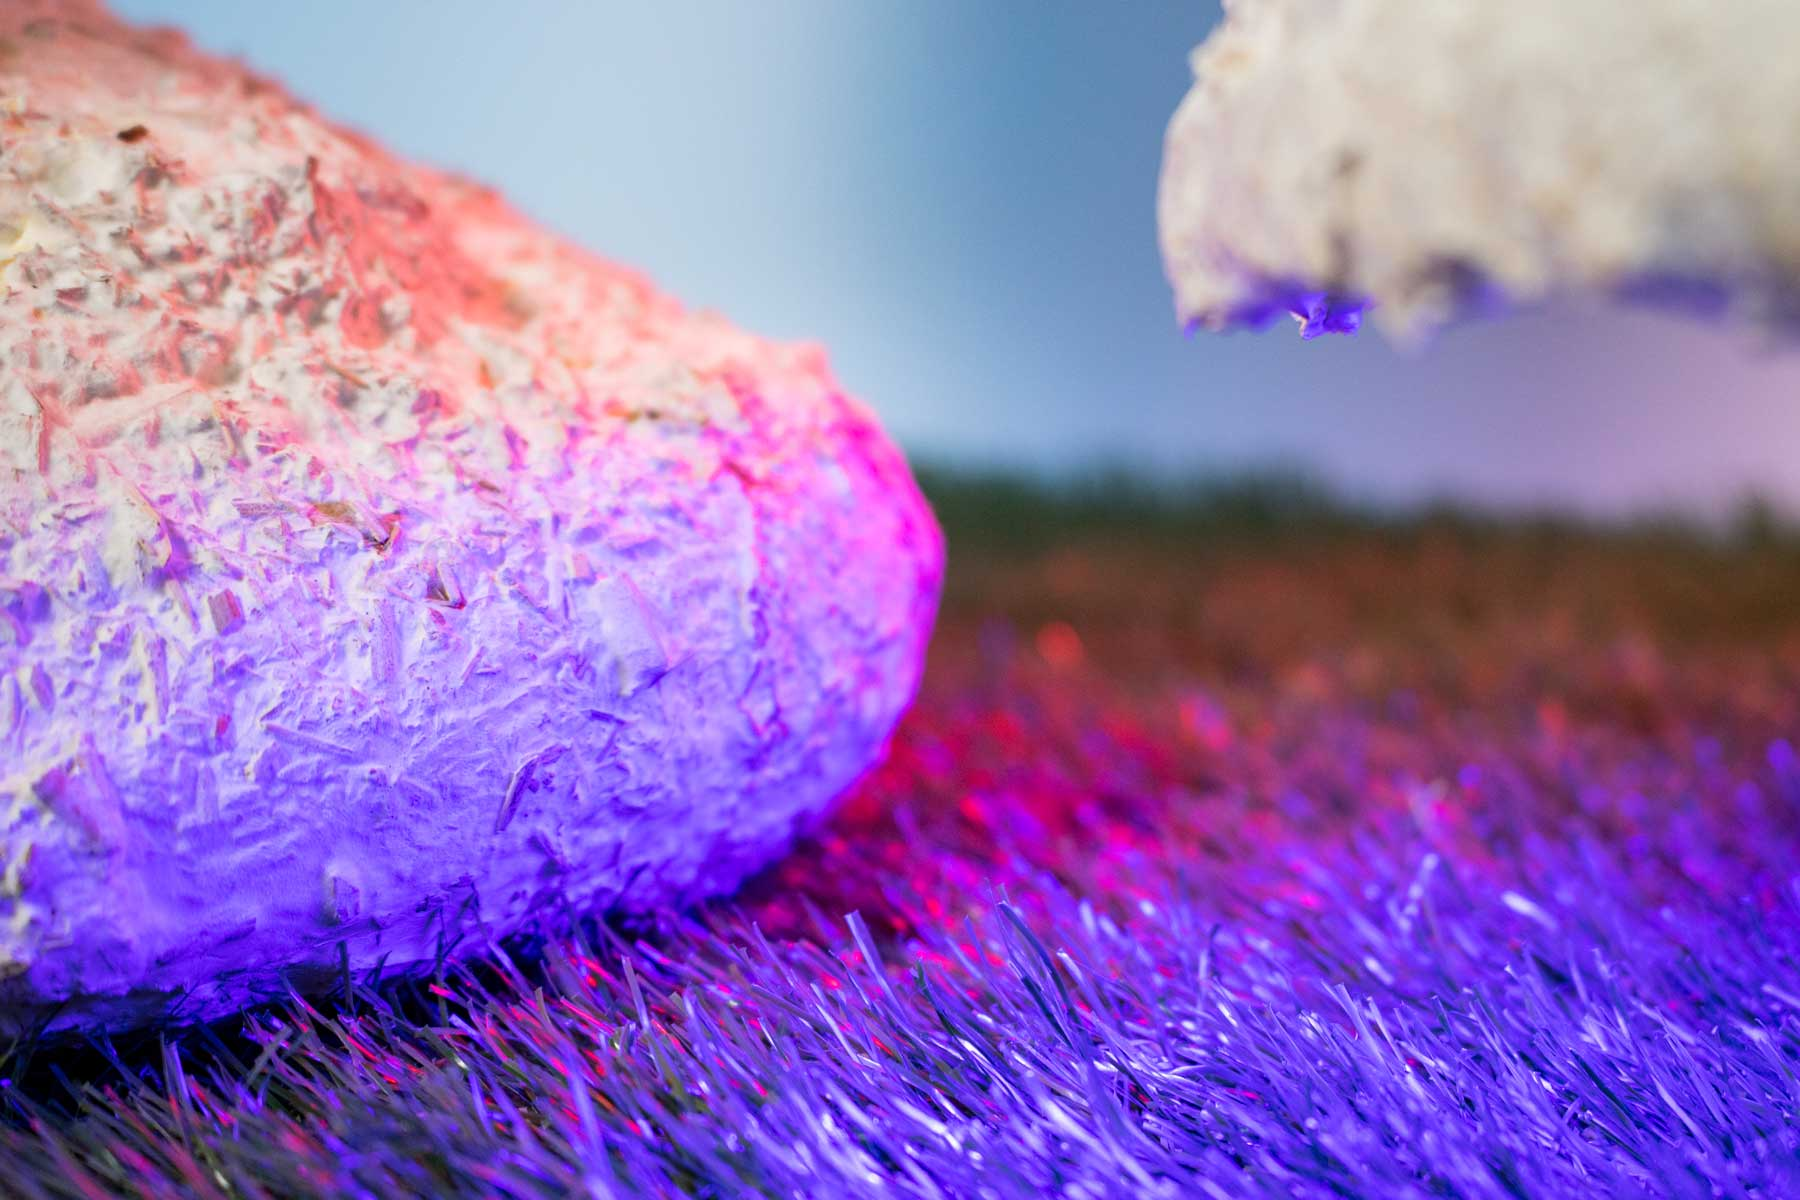 Close up on textured surface of white/cream organic sculptures. Pink and purple light shines on the sculptures.